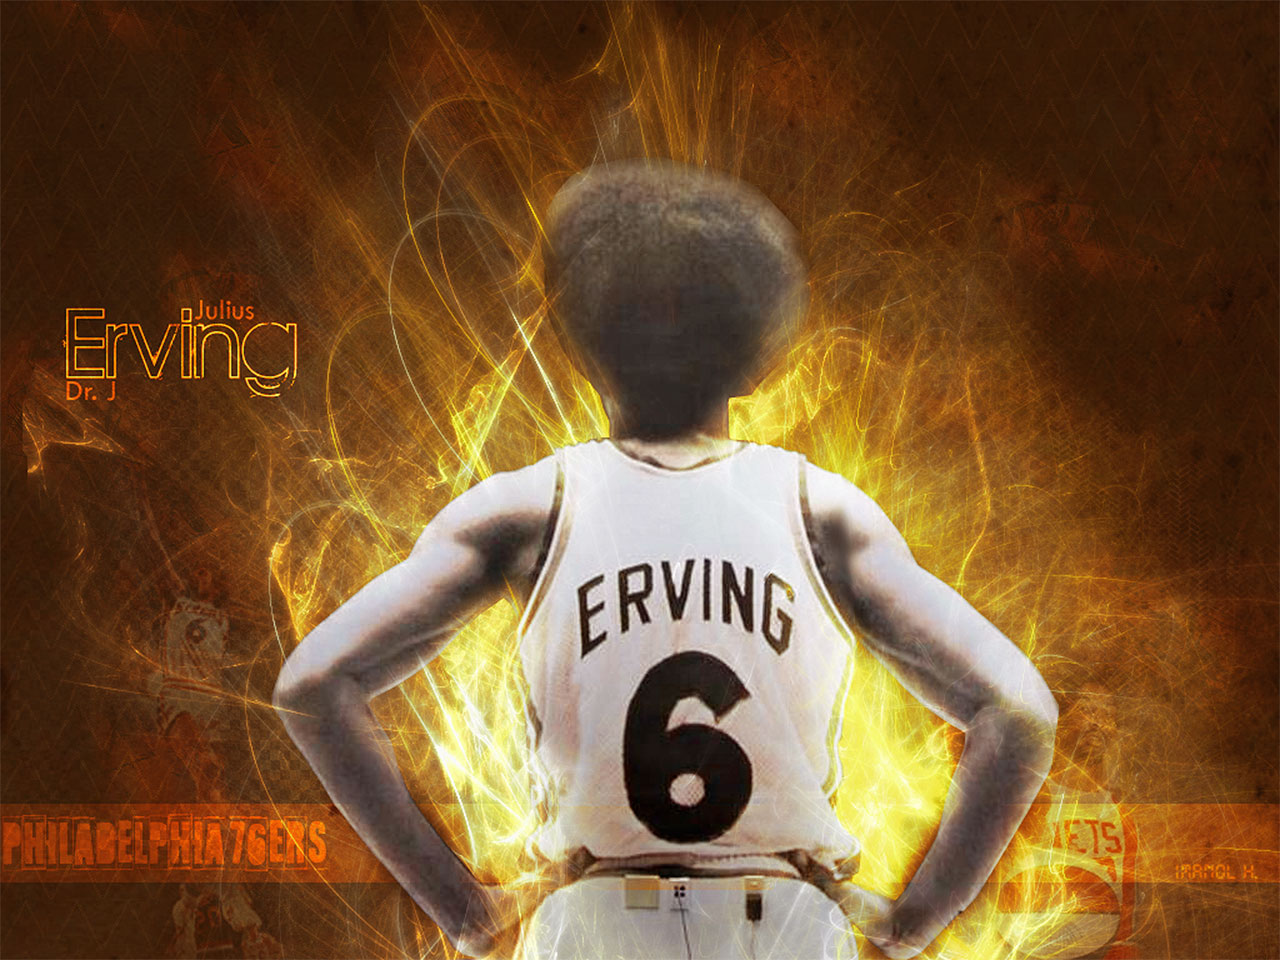 Julius-Erving-76ers-Wallpaper jpgJulius Erving 76ers